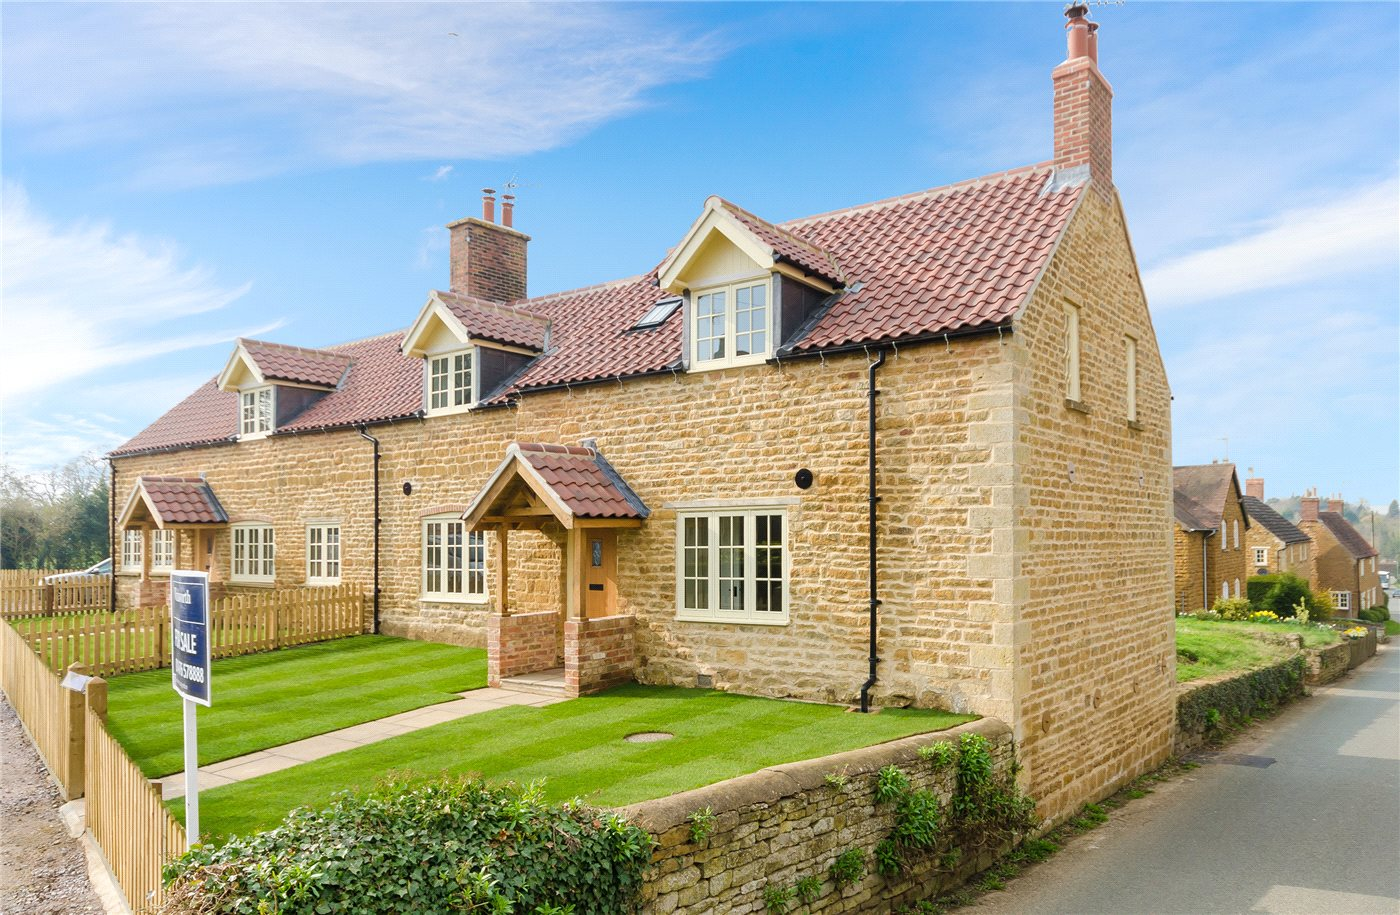 3 Bedrooms House for sale in Main Street, Denton, Grantham, NG32